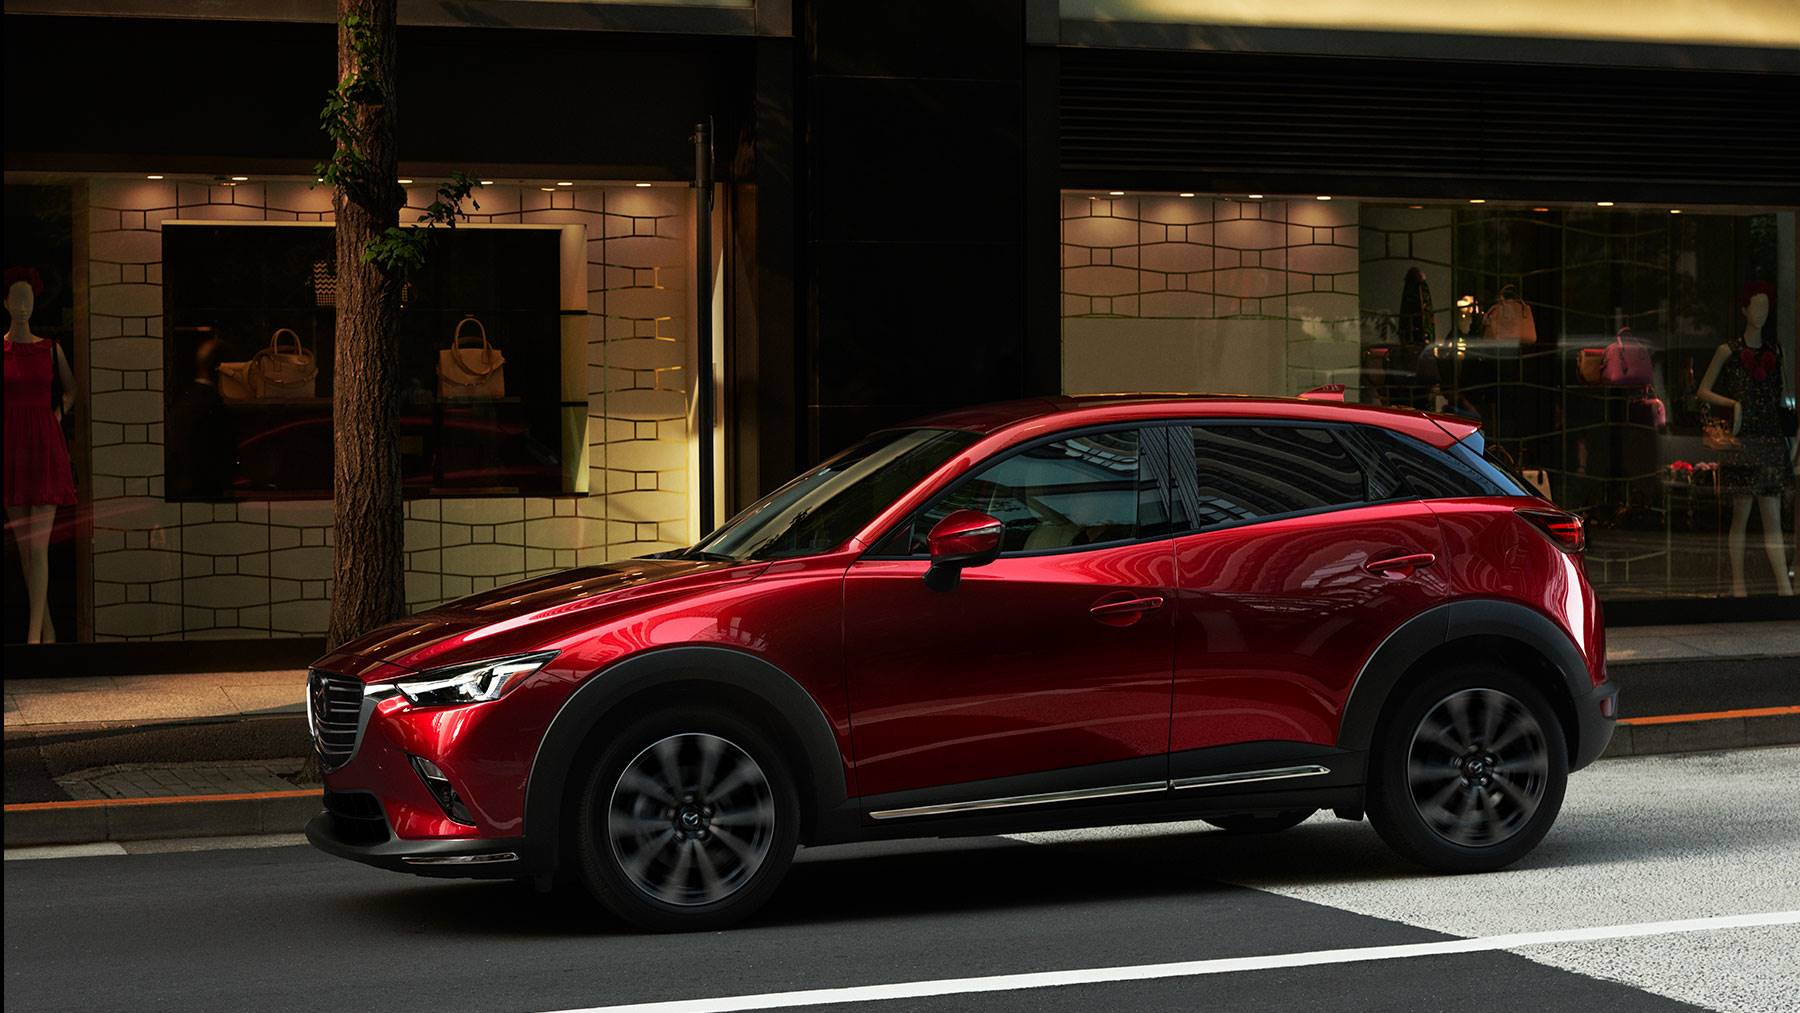 2019 Mazda CX-3 for Sale in Monroe, LA